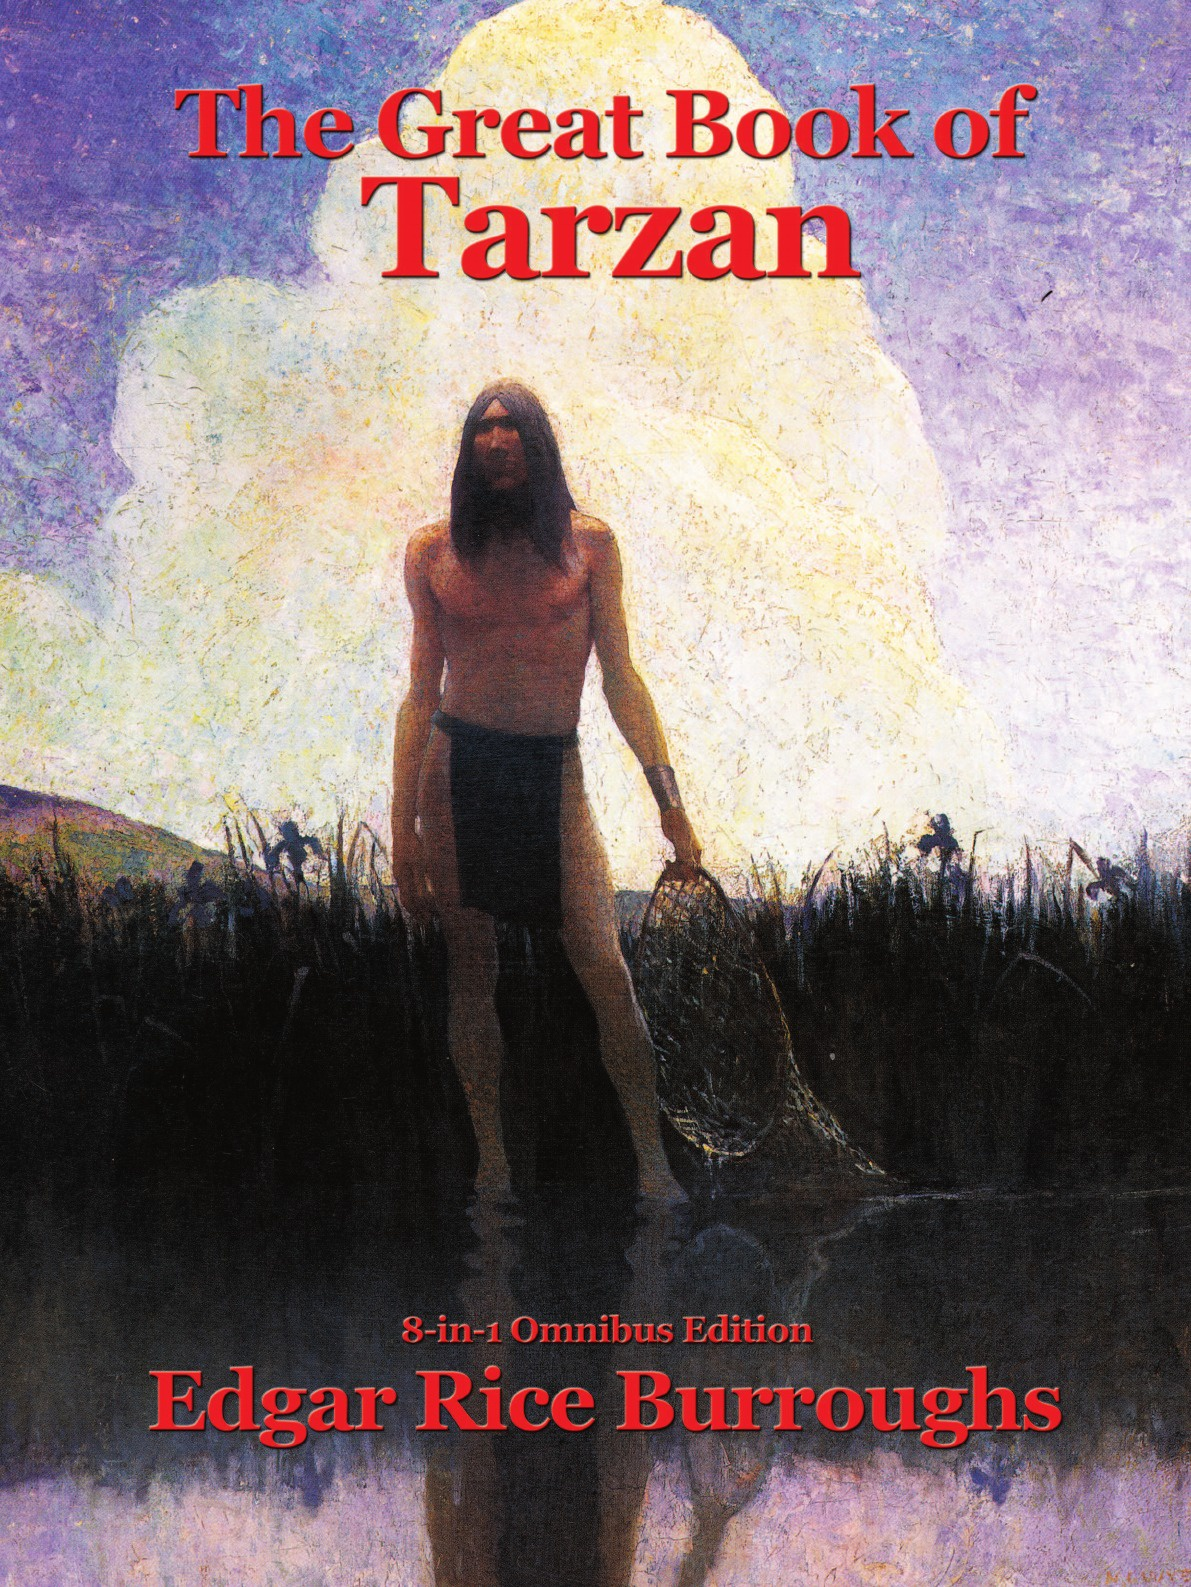 Edgar Rice Burroughs The Great Book of Tarzan edgar rice burroughs the war chief